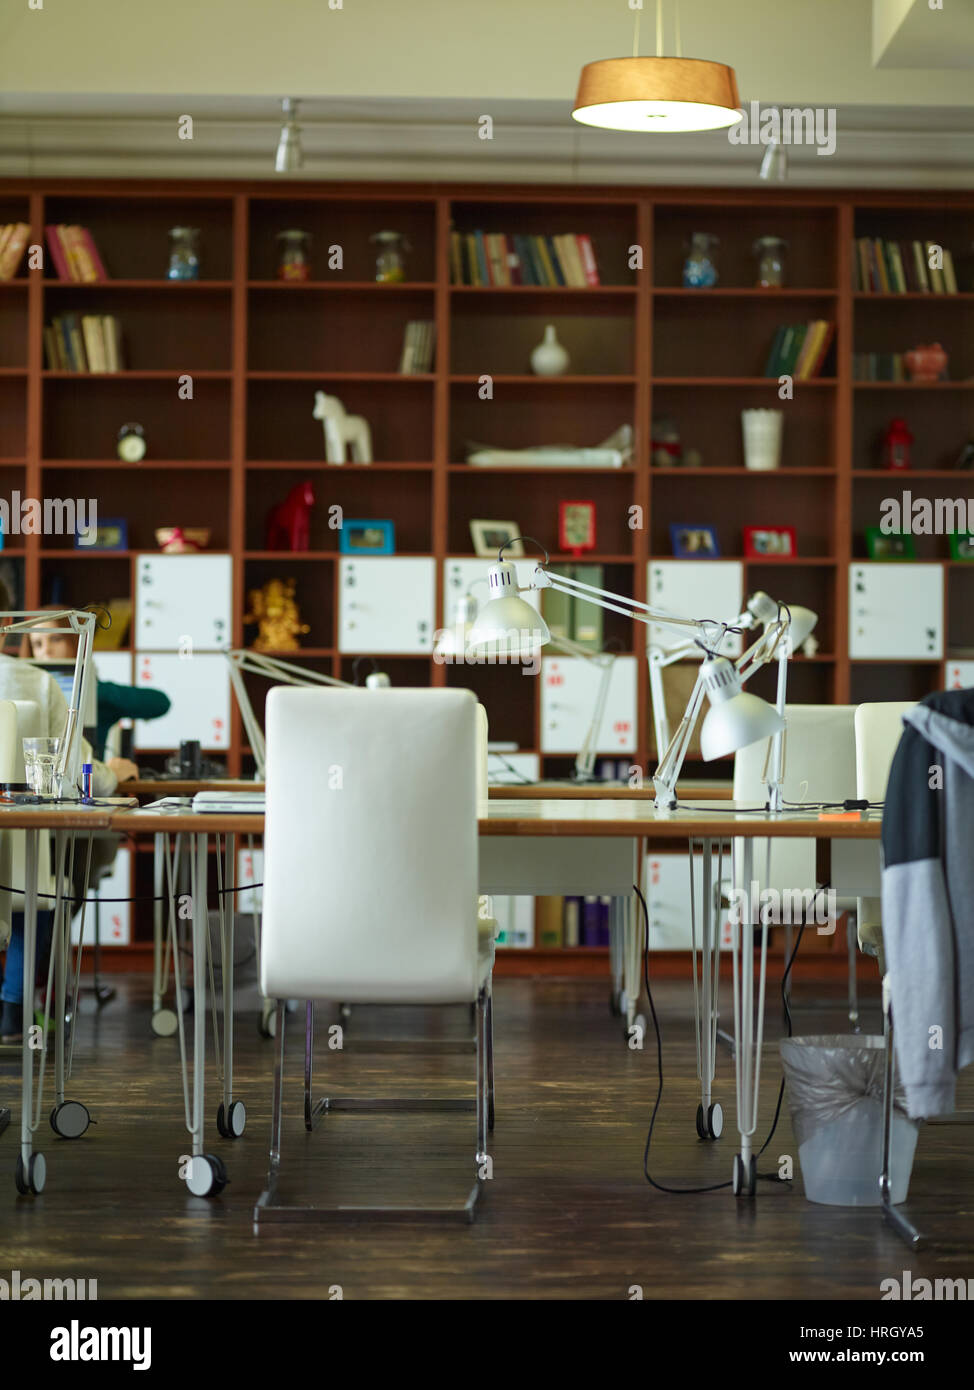 Working desks with lamps against tall bookcases in modern office room with interior in warm brown tones - Stock Image